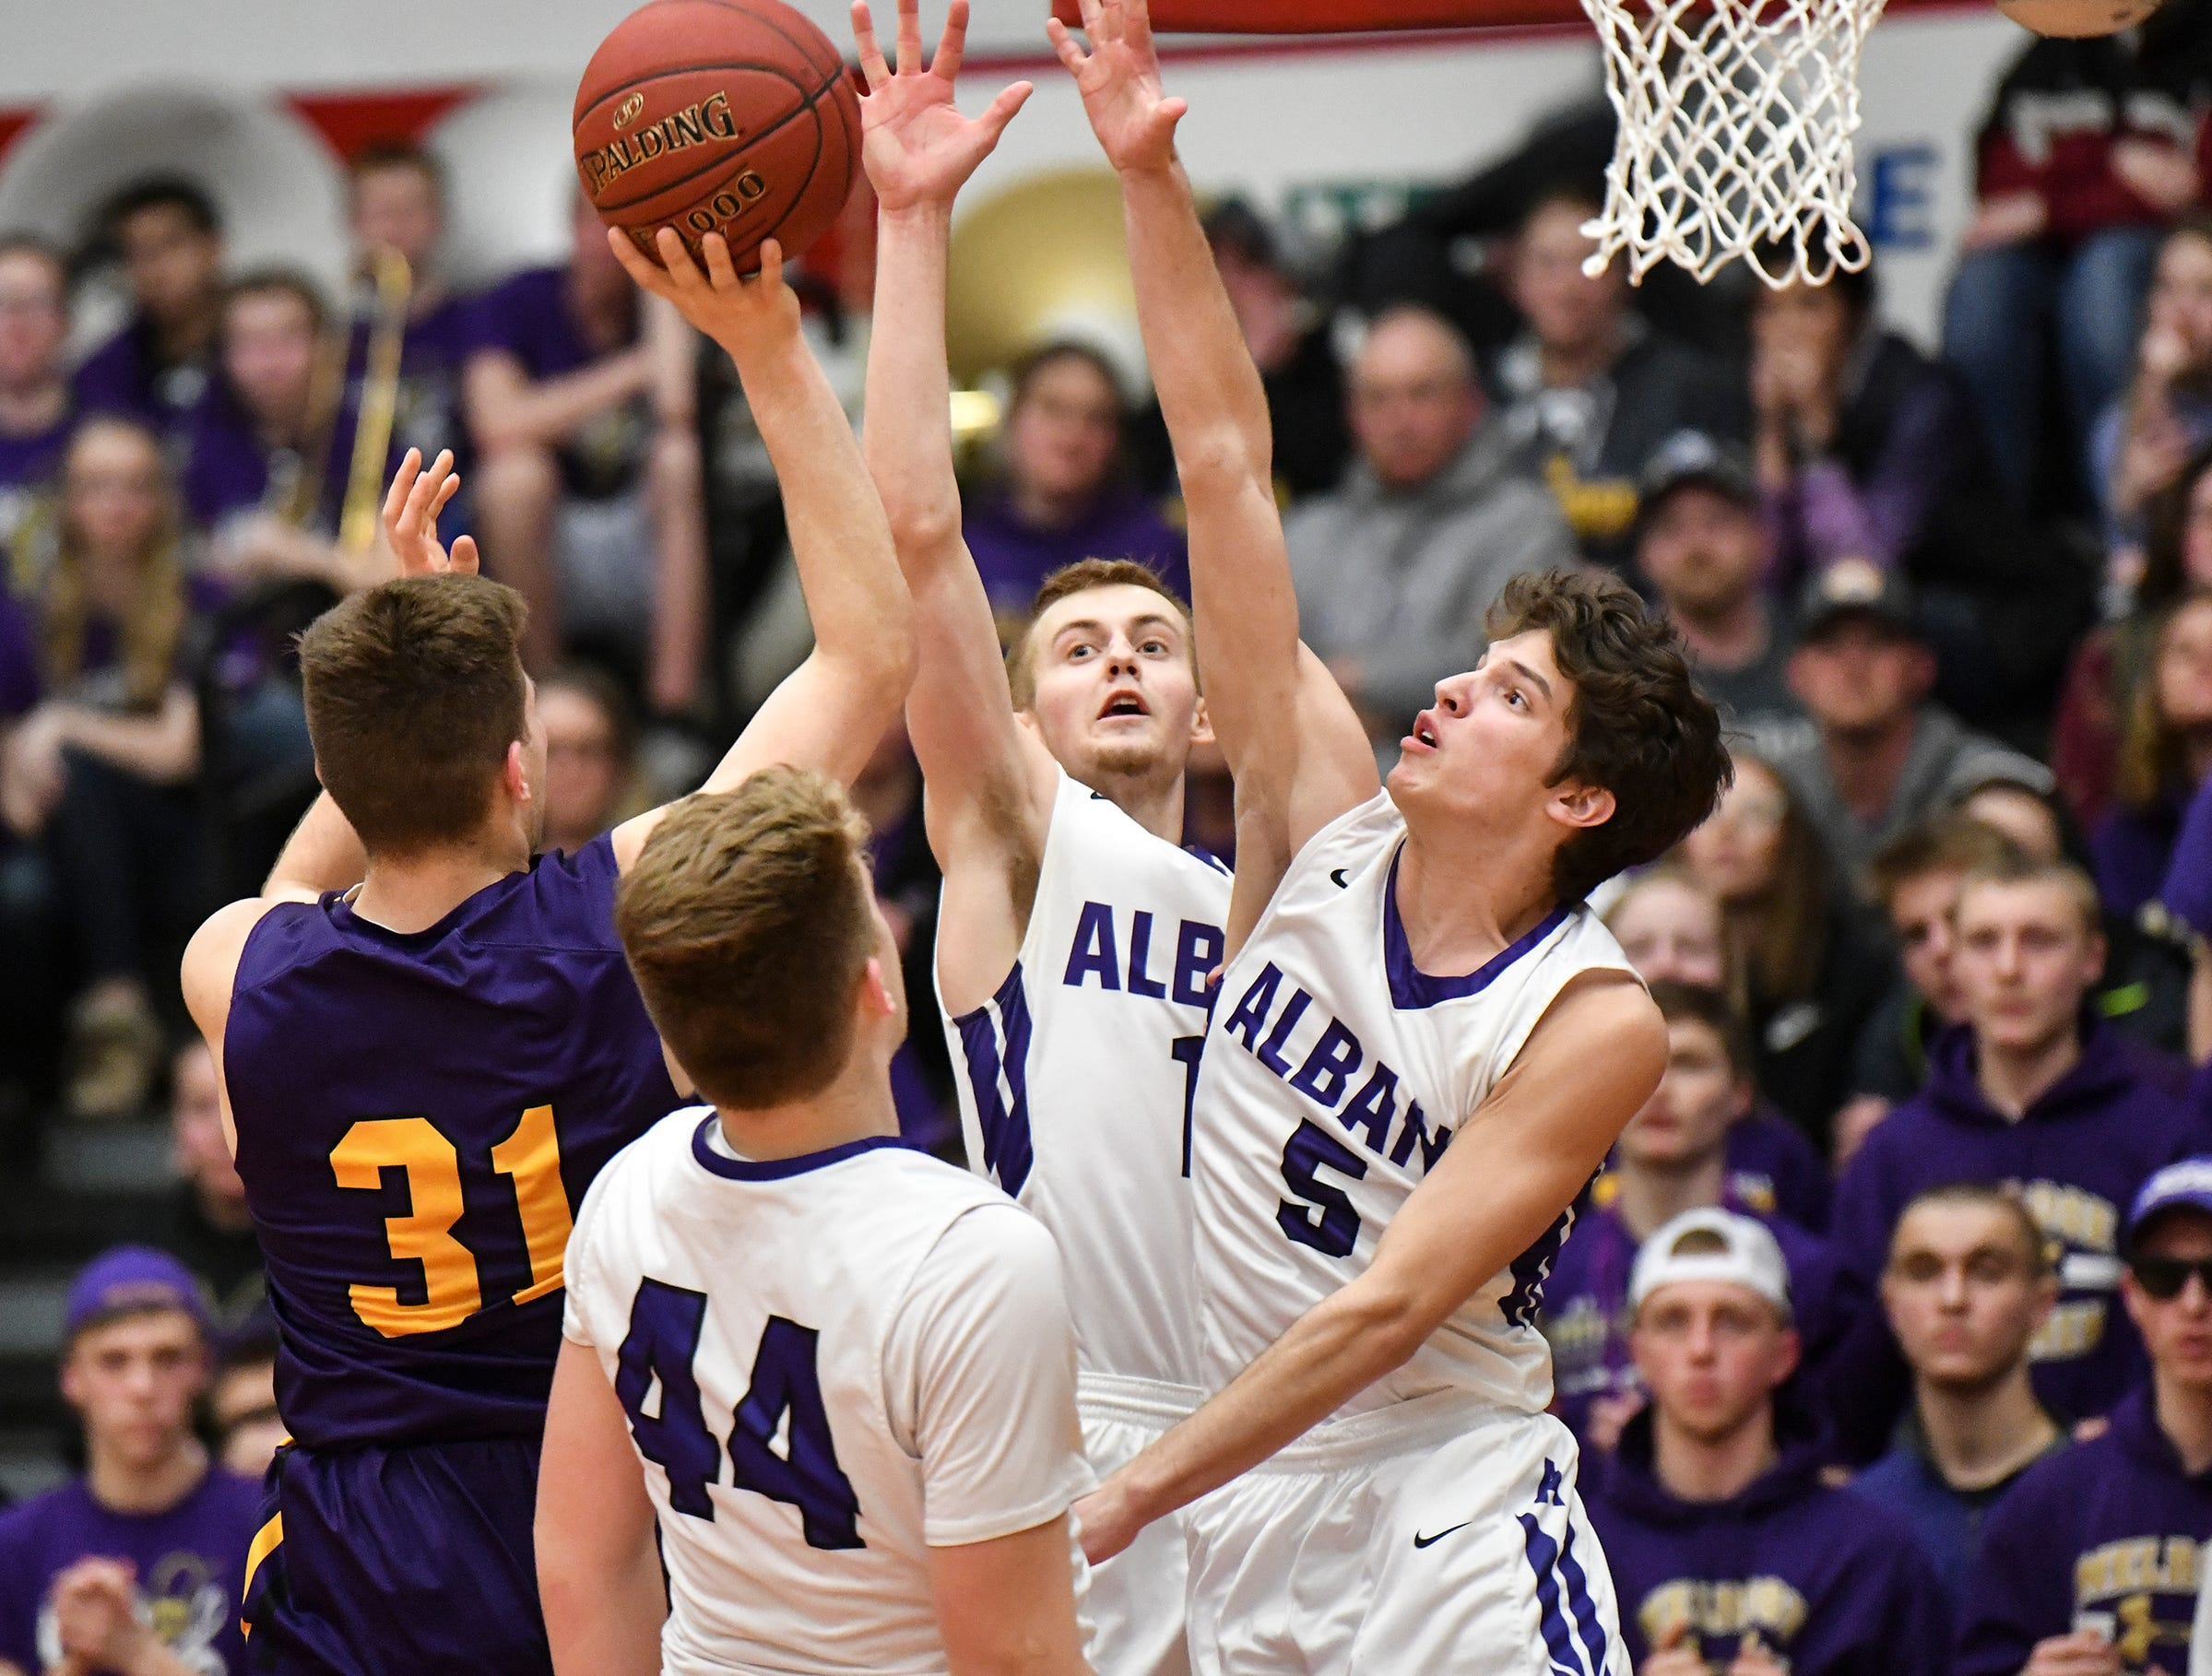 Albany players jump to block a shot by Adam Helmin of Melrose during the second half of the Friday, March 15, Section 6-2A championship game at Halenbeck Hall in St. Cloud.